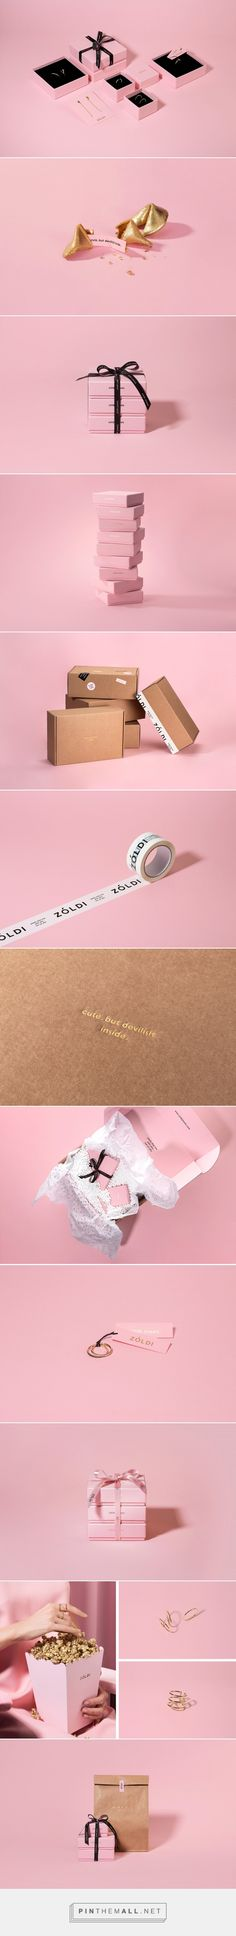 Zoldi Jewels packaging design by F61 Work Room - http://www.packagingoftheworld.com/2017/10/zoldi-jewels.html